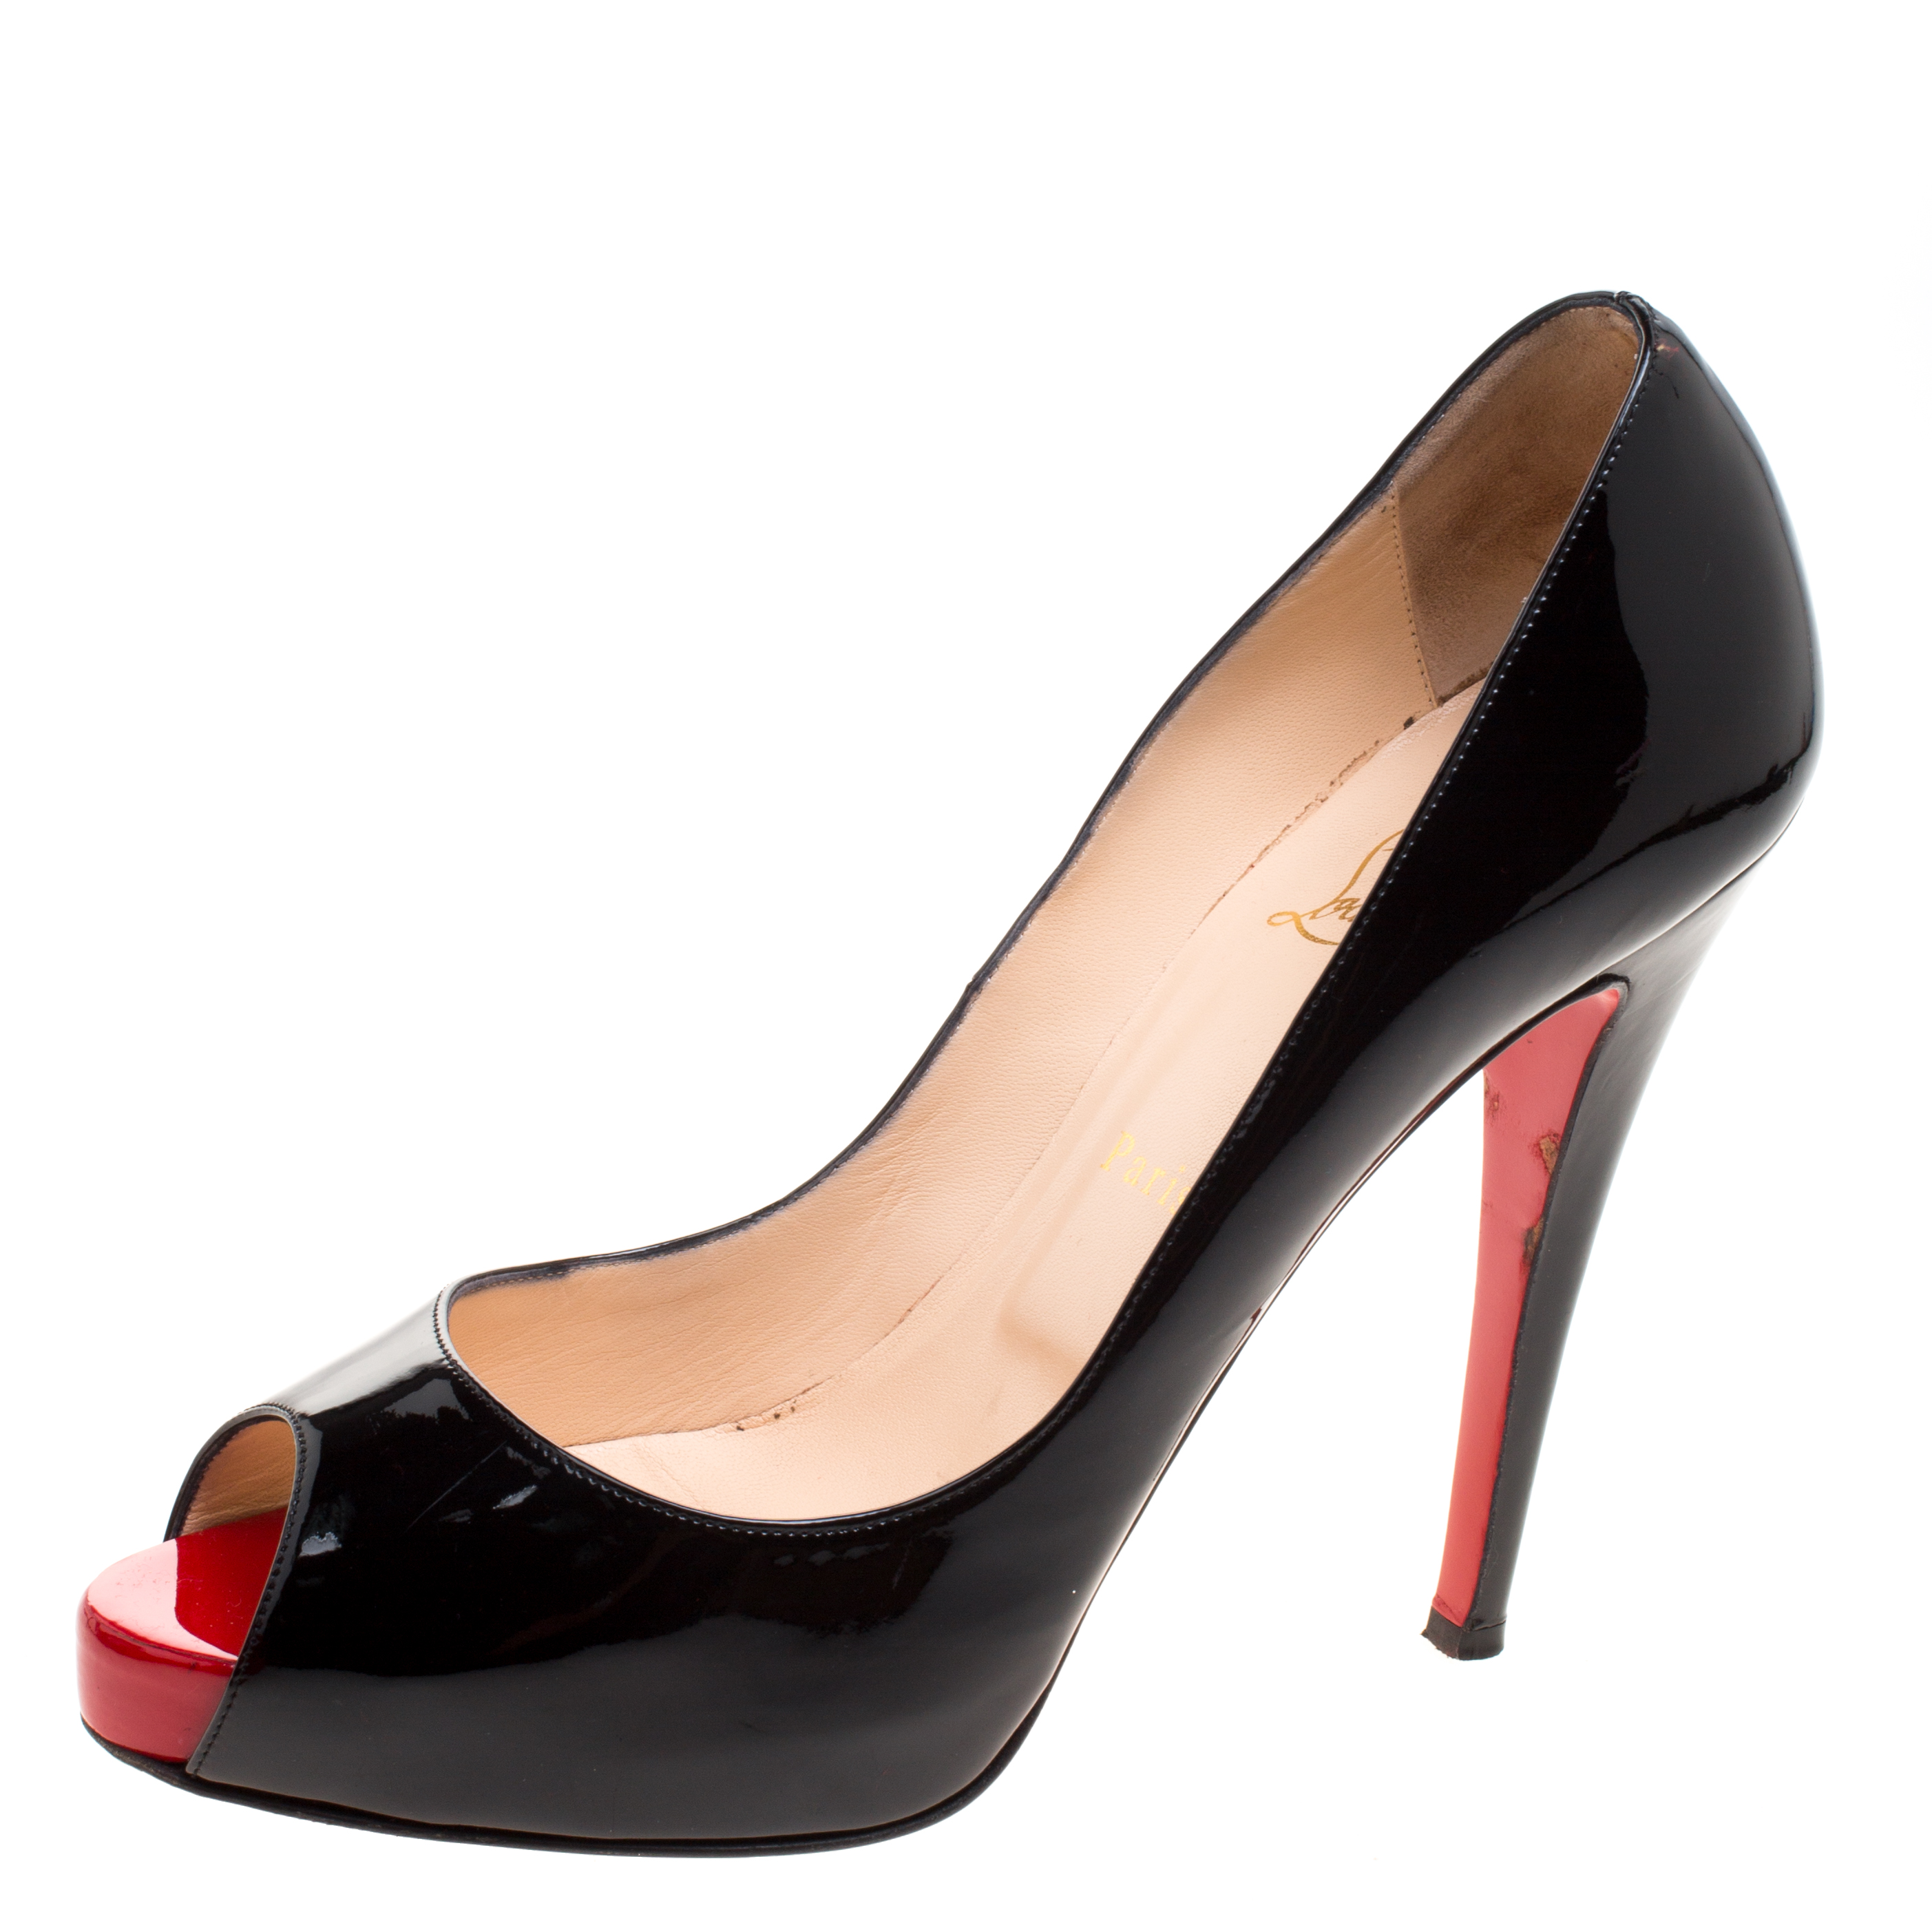 separation shoes c67fb 662fb Christian Louboutin Black Patent Leather Very Prive Peep Toe Pumps Size 41.5